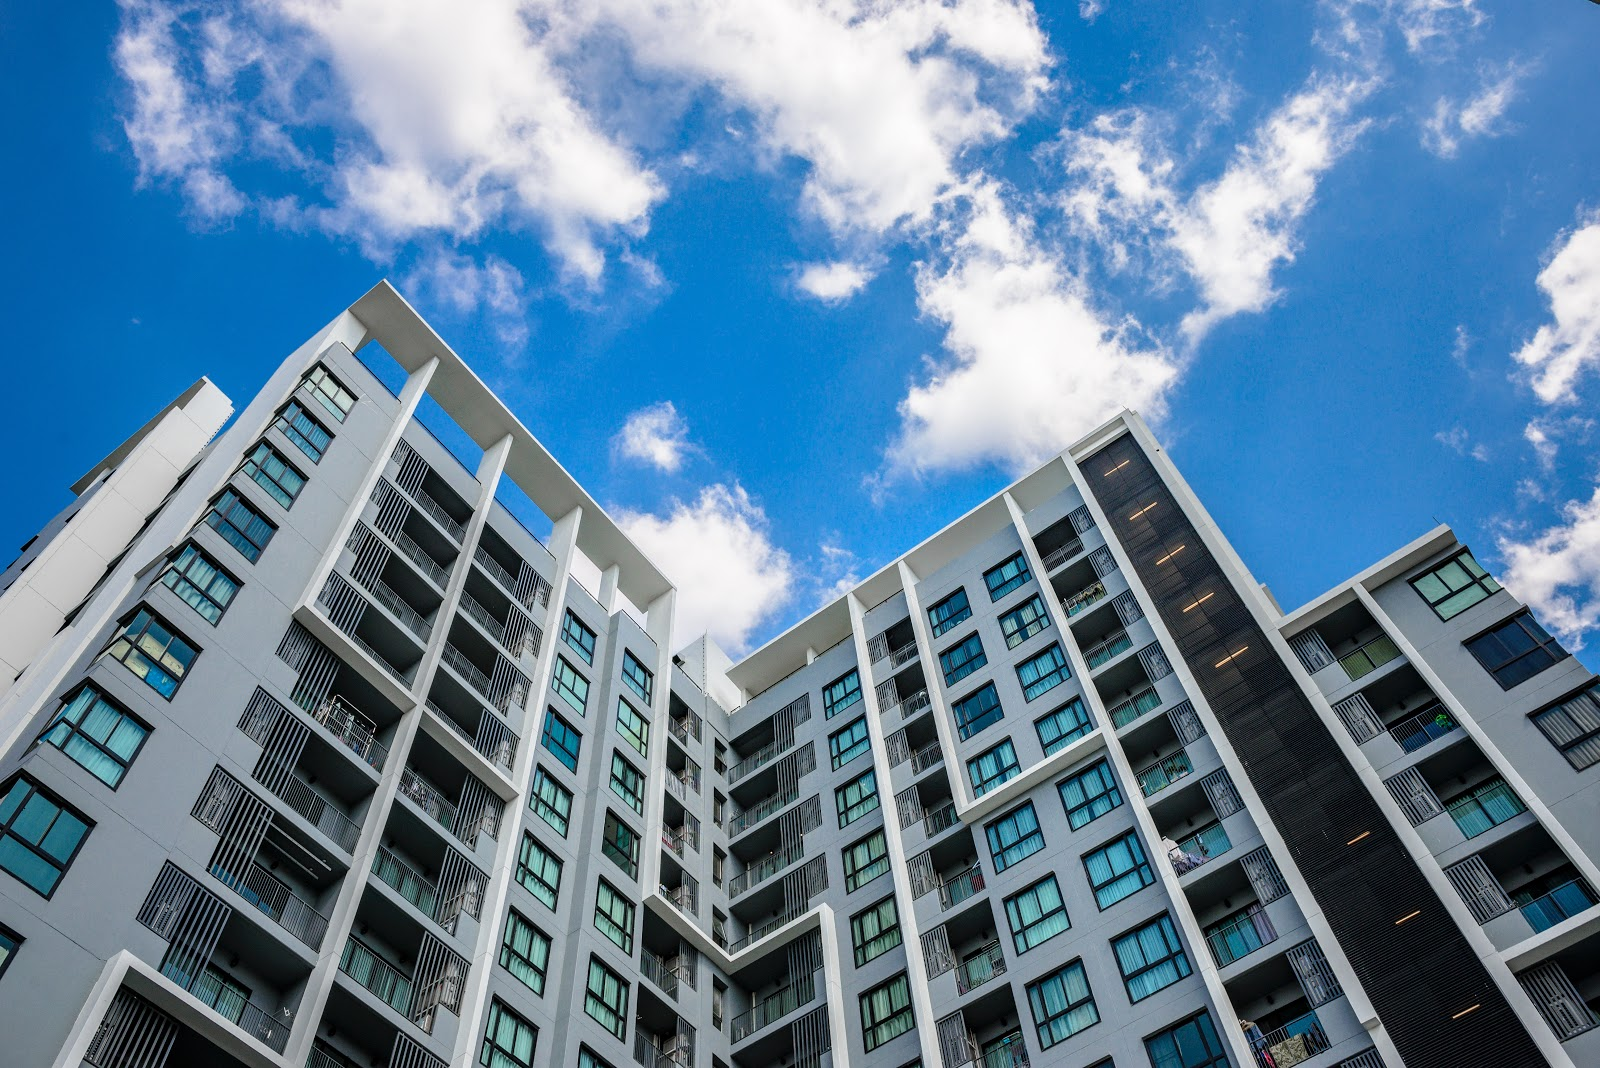 Affordable condominium property investment and real estate investment for ofw in the Philippines